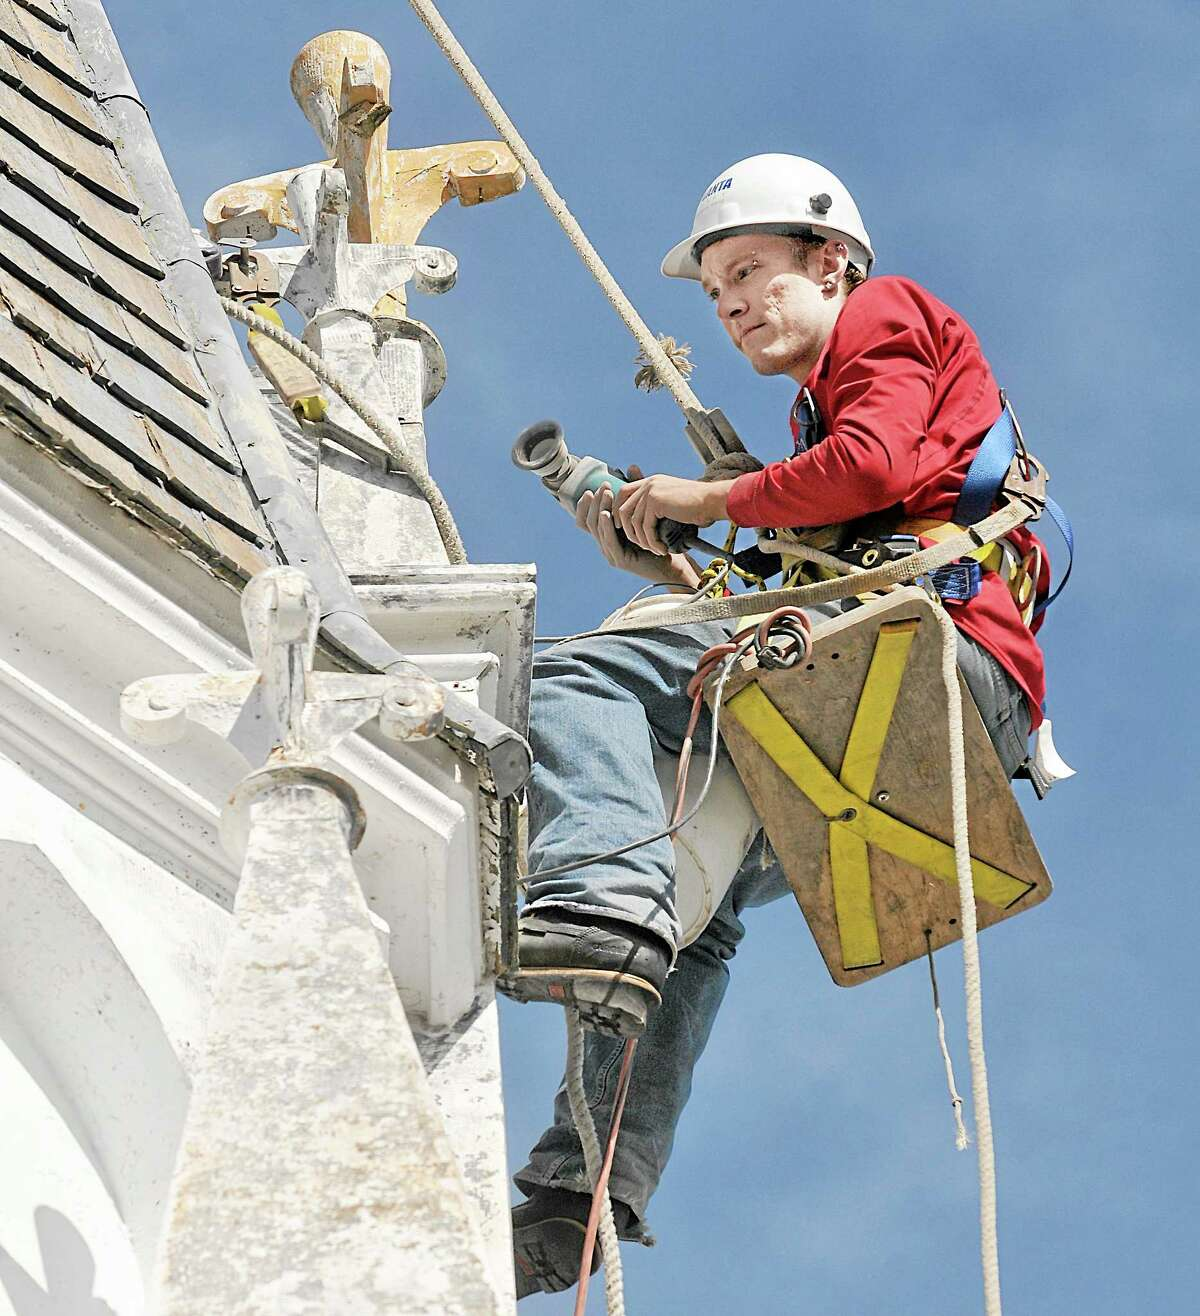 Burlington resident Mark Savsanavitch sands the steeple at St. Patrick Church on West High Street in East Hampton Tuesday afternoon. Savsanavitch, an apprentice steeple jack employed by James Pedrolini of All State Waterproofing, is contracted by Baker Liturgical Art to renovate the 80-foot high metal steeple and cedar shake roof. Catherine Avalone — The Middletown Press